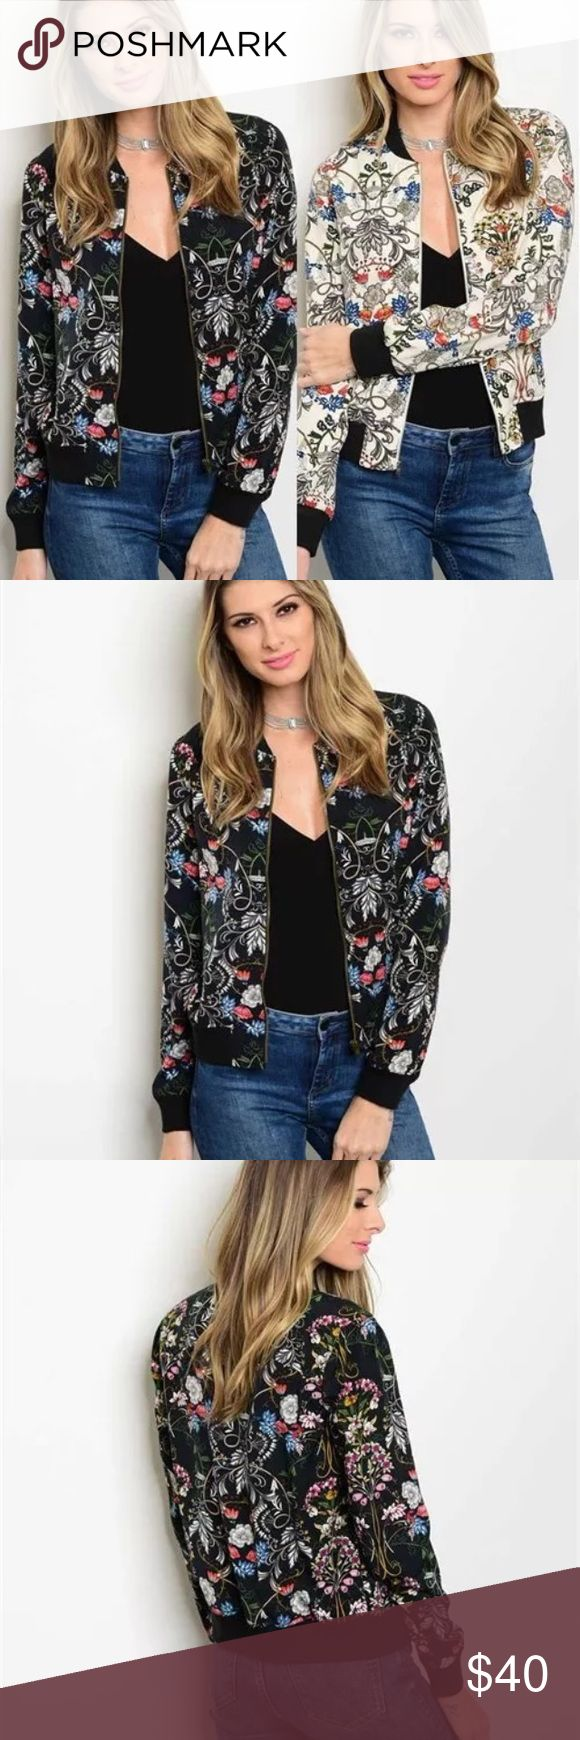 Cute flowered bomber jacket Cute Long Sleeve Zipper Floral Print Bomber Jacket Ladies Outerwear  Material : Fabric Content: 100%Polyester  Color: Black, Beige Fashionable Floral Print Bomber Jacket Comes in s, m or large. True to size * Jackets & Coats